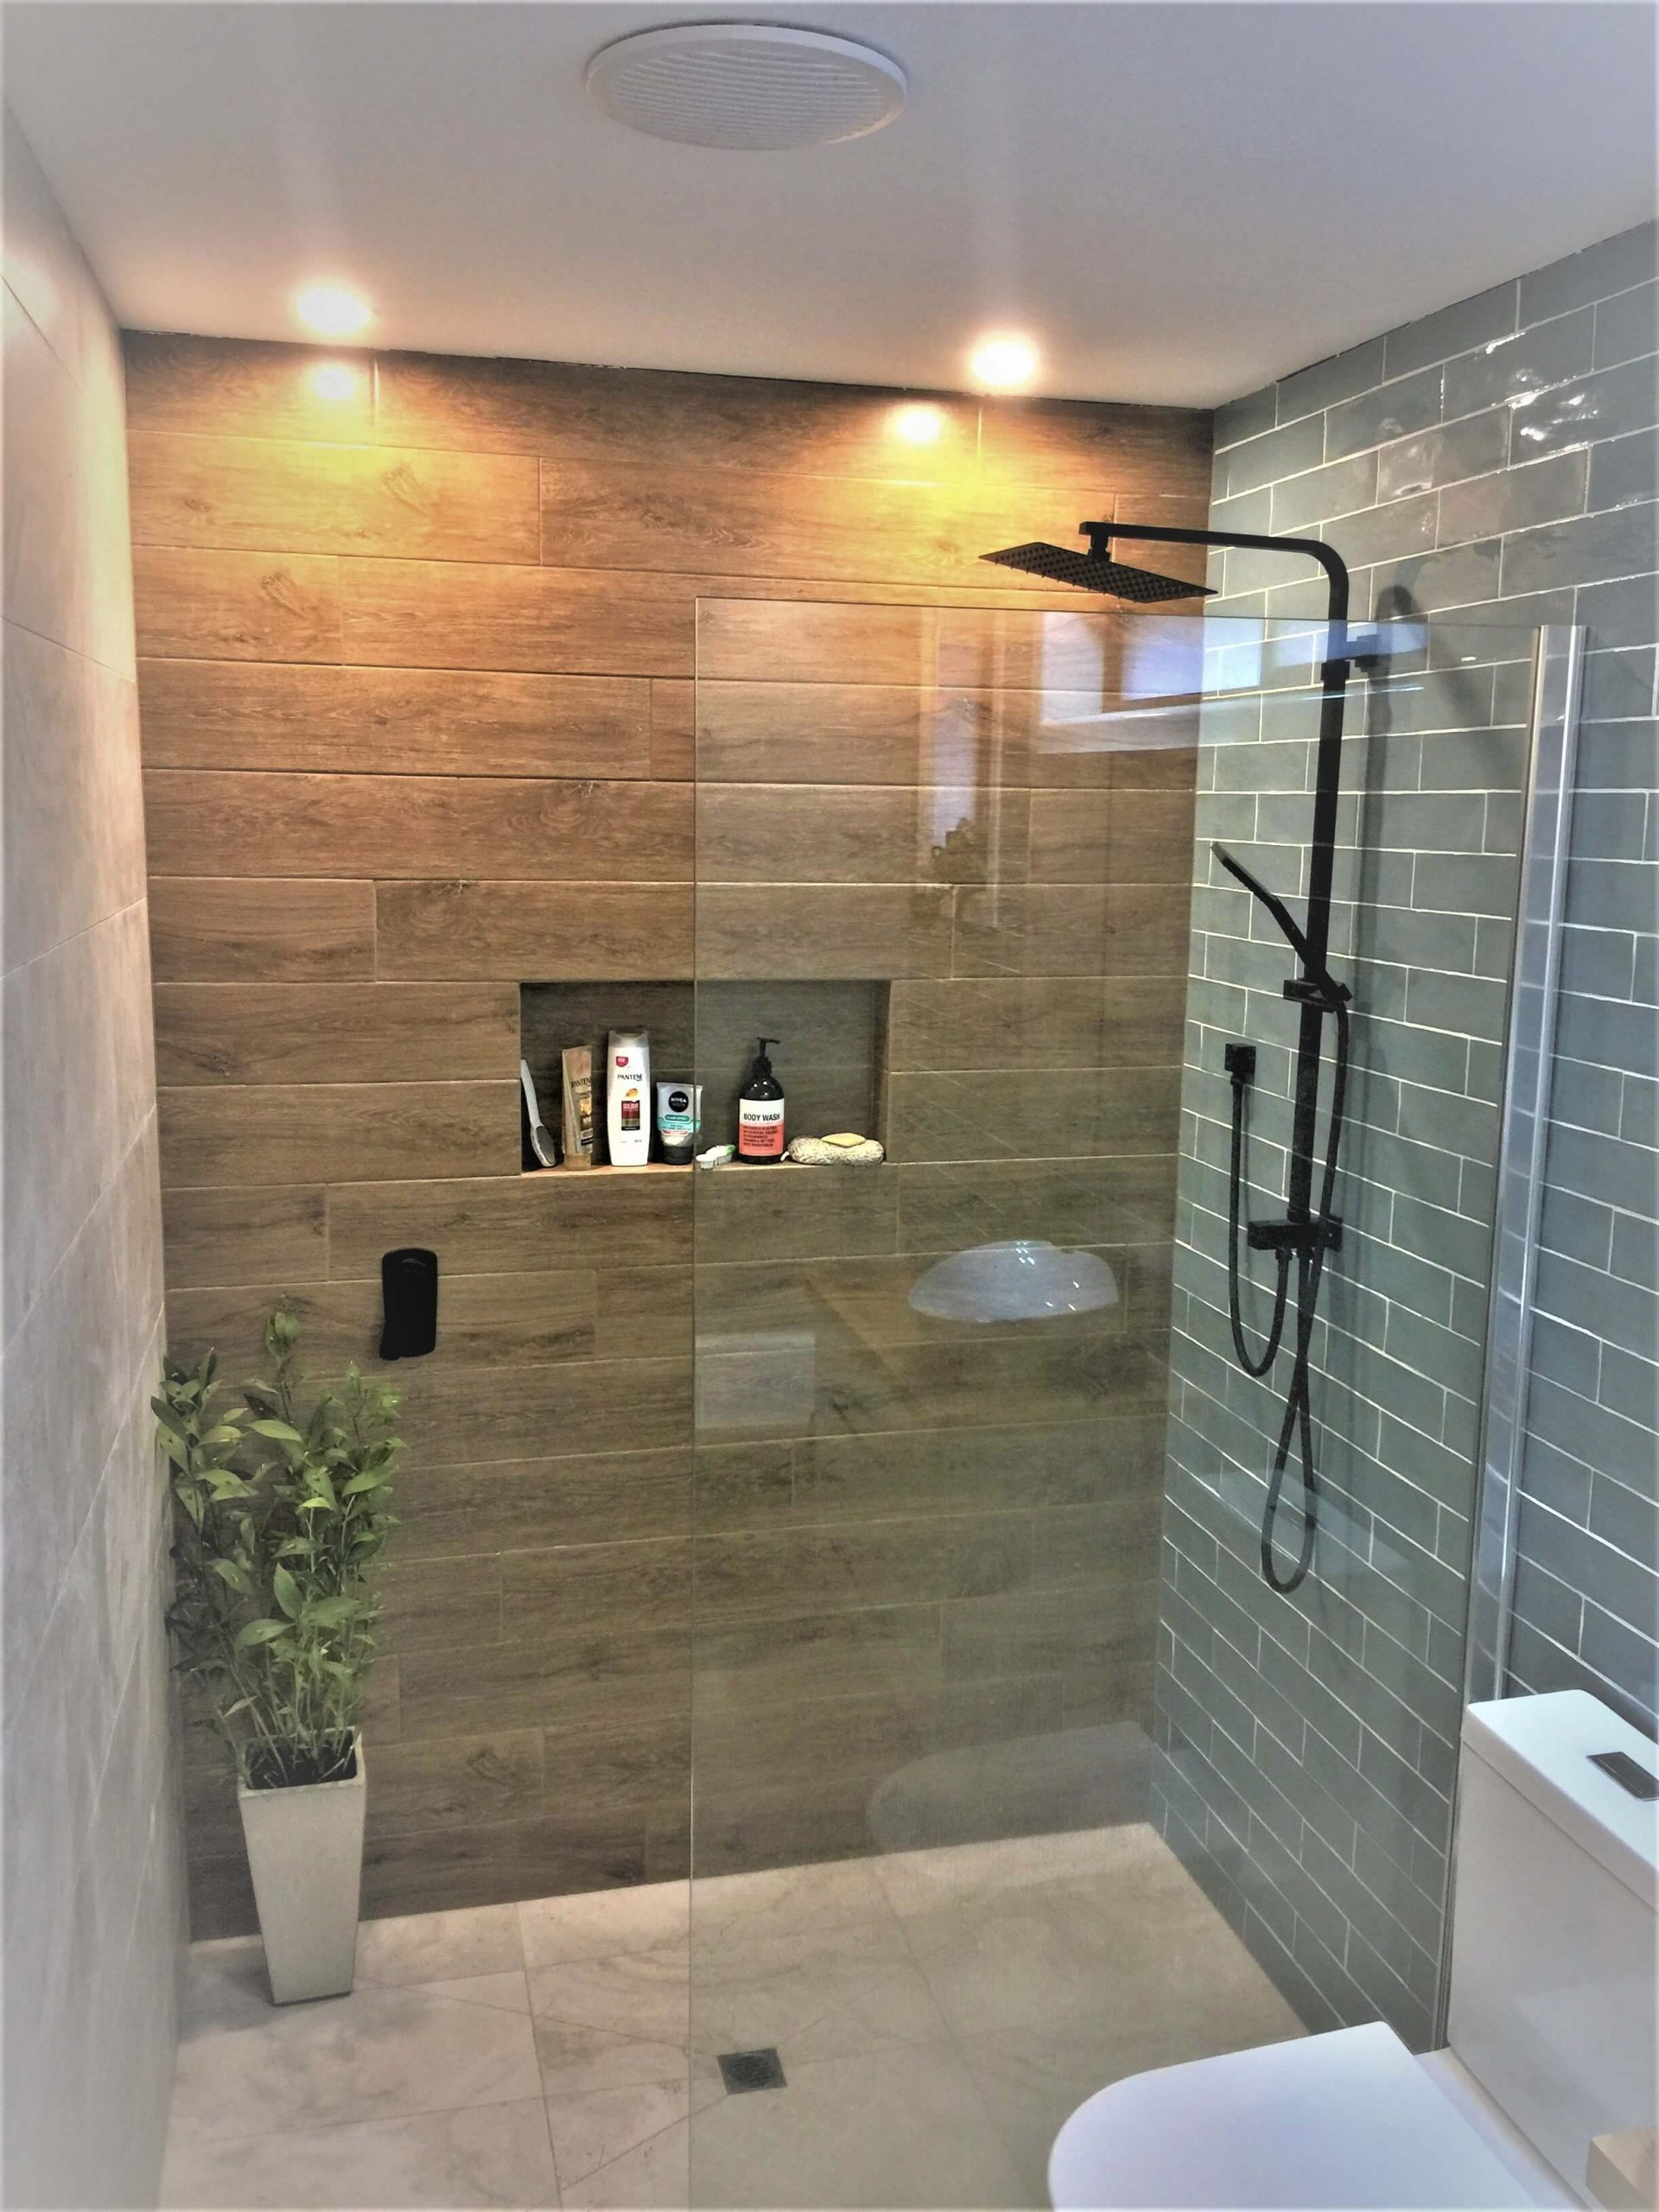 Bathroom Colaberated styling